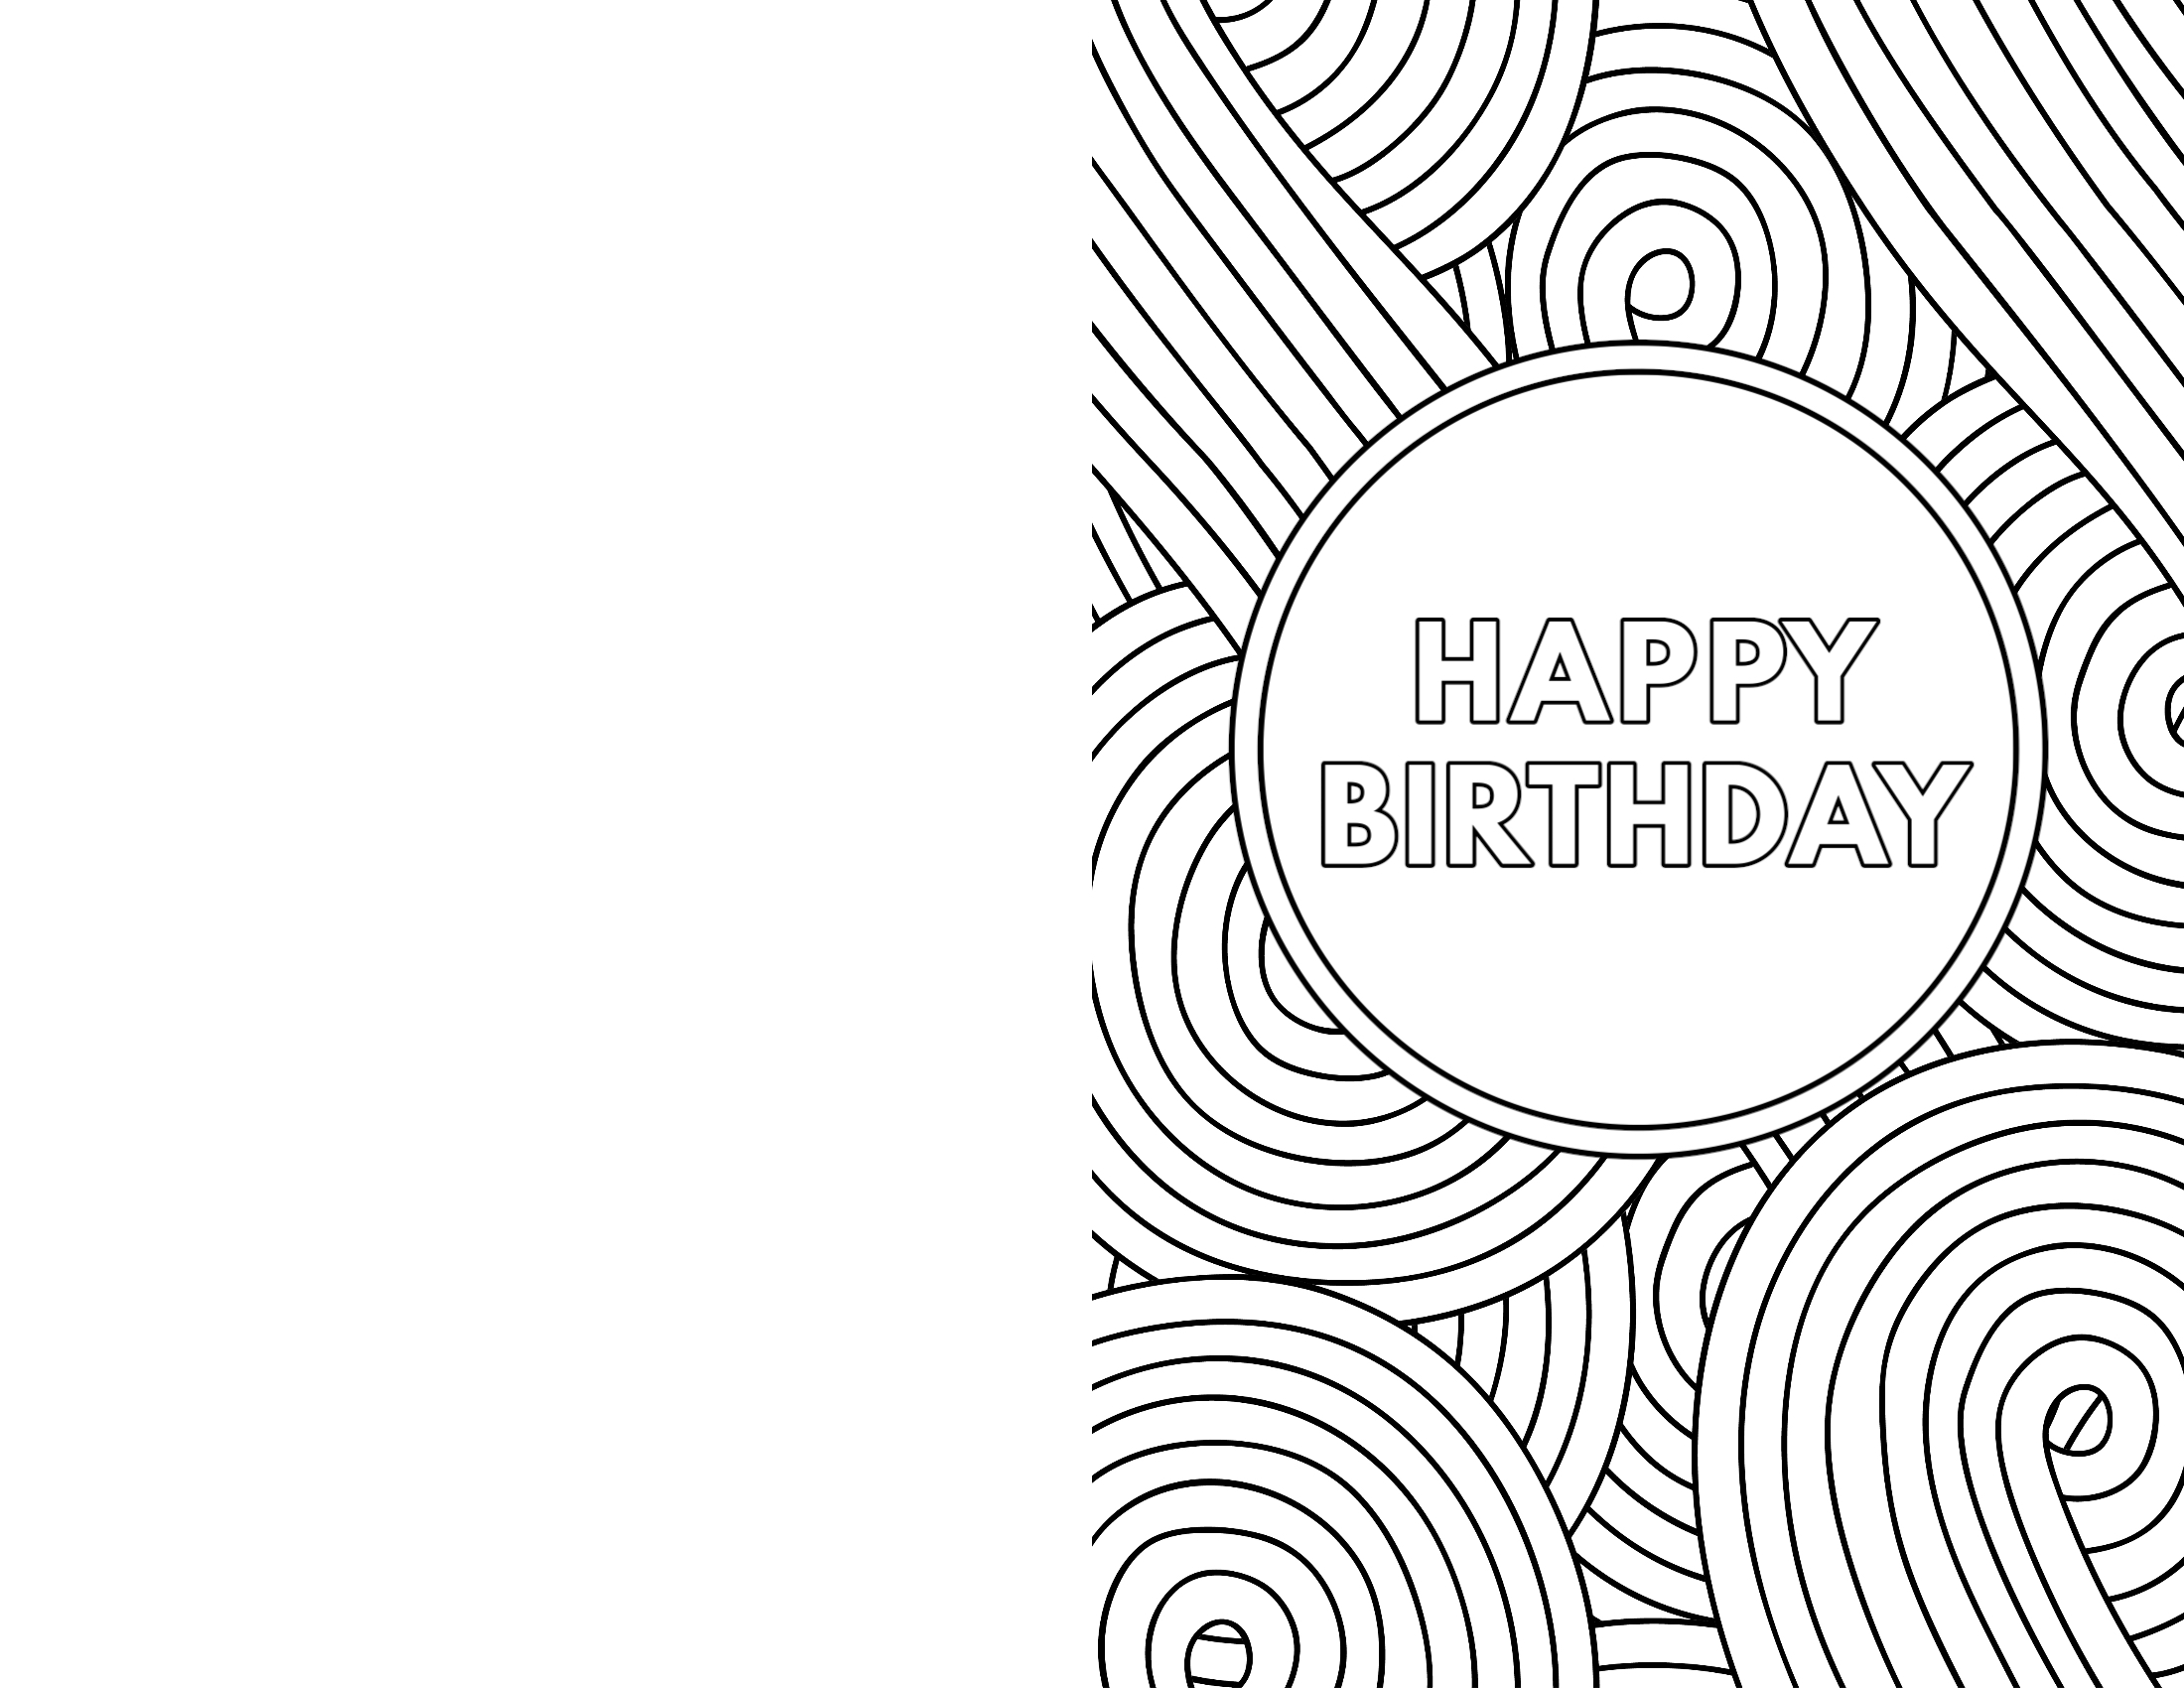 Free Printable Happy Birthday Card Coloring Page Fold In Half